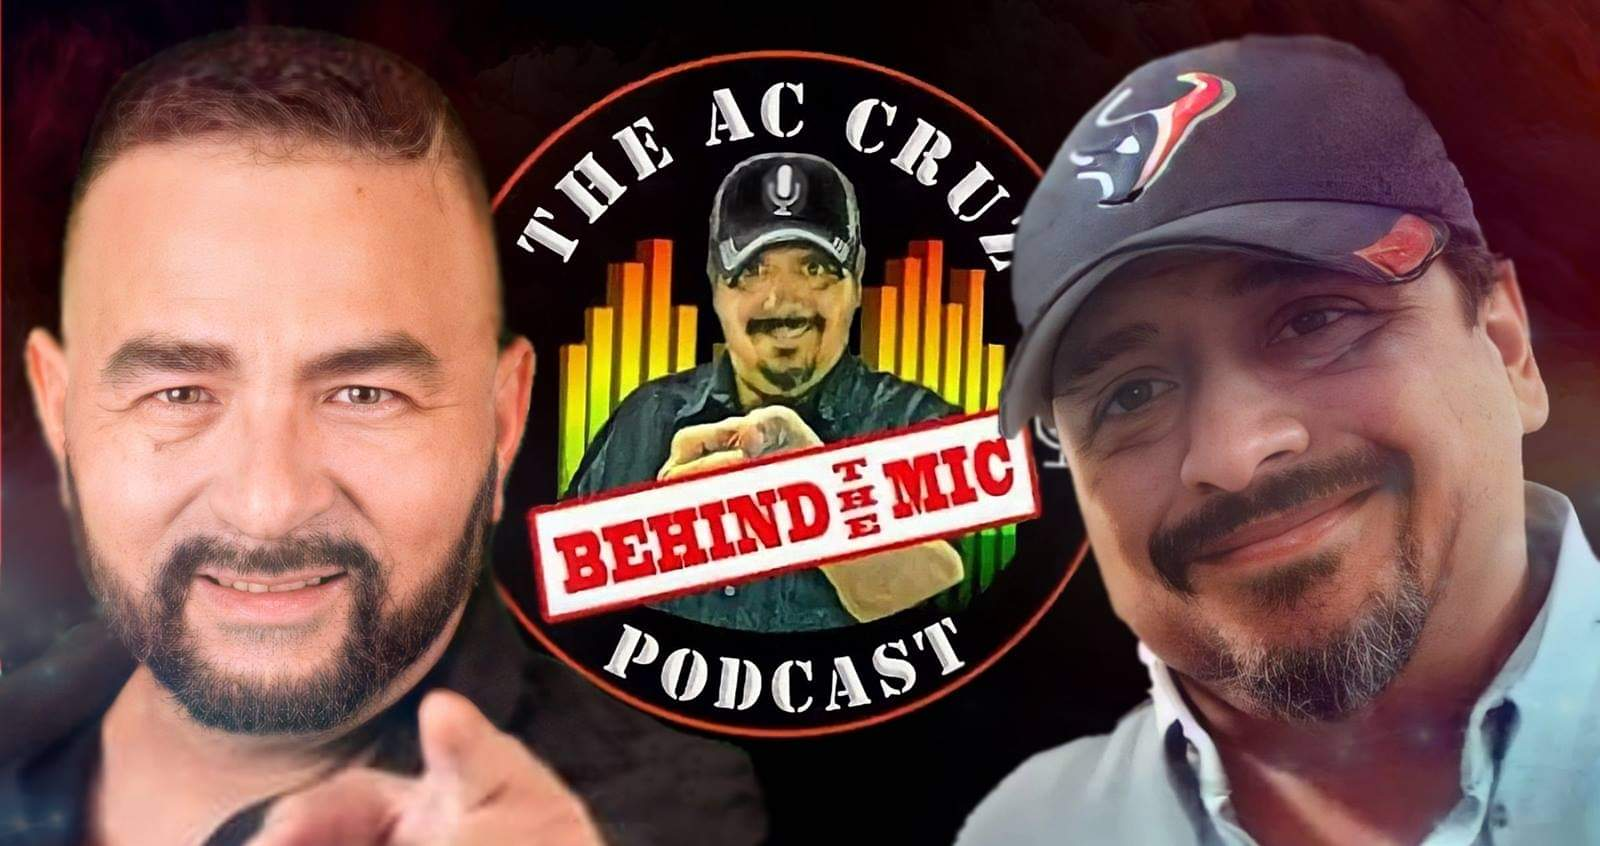 Behind The Mic with Danny Guerra